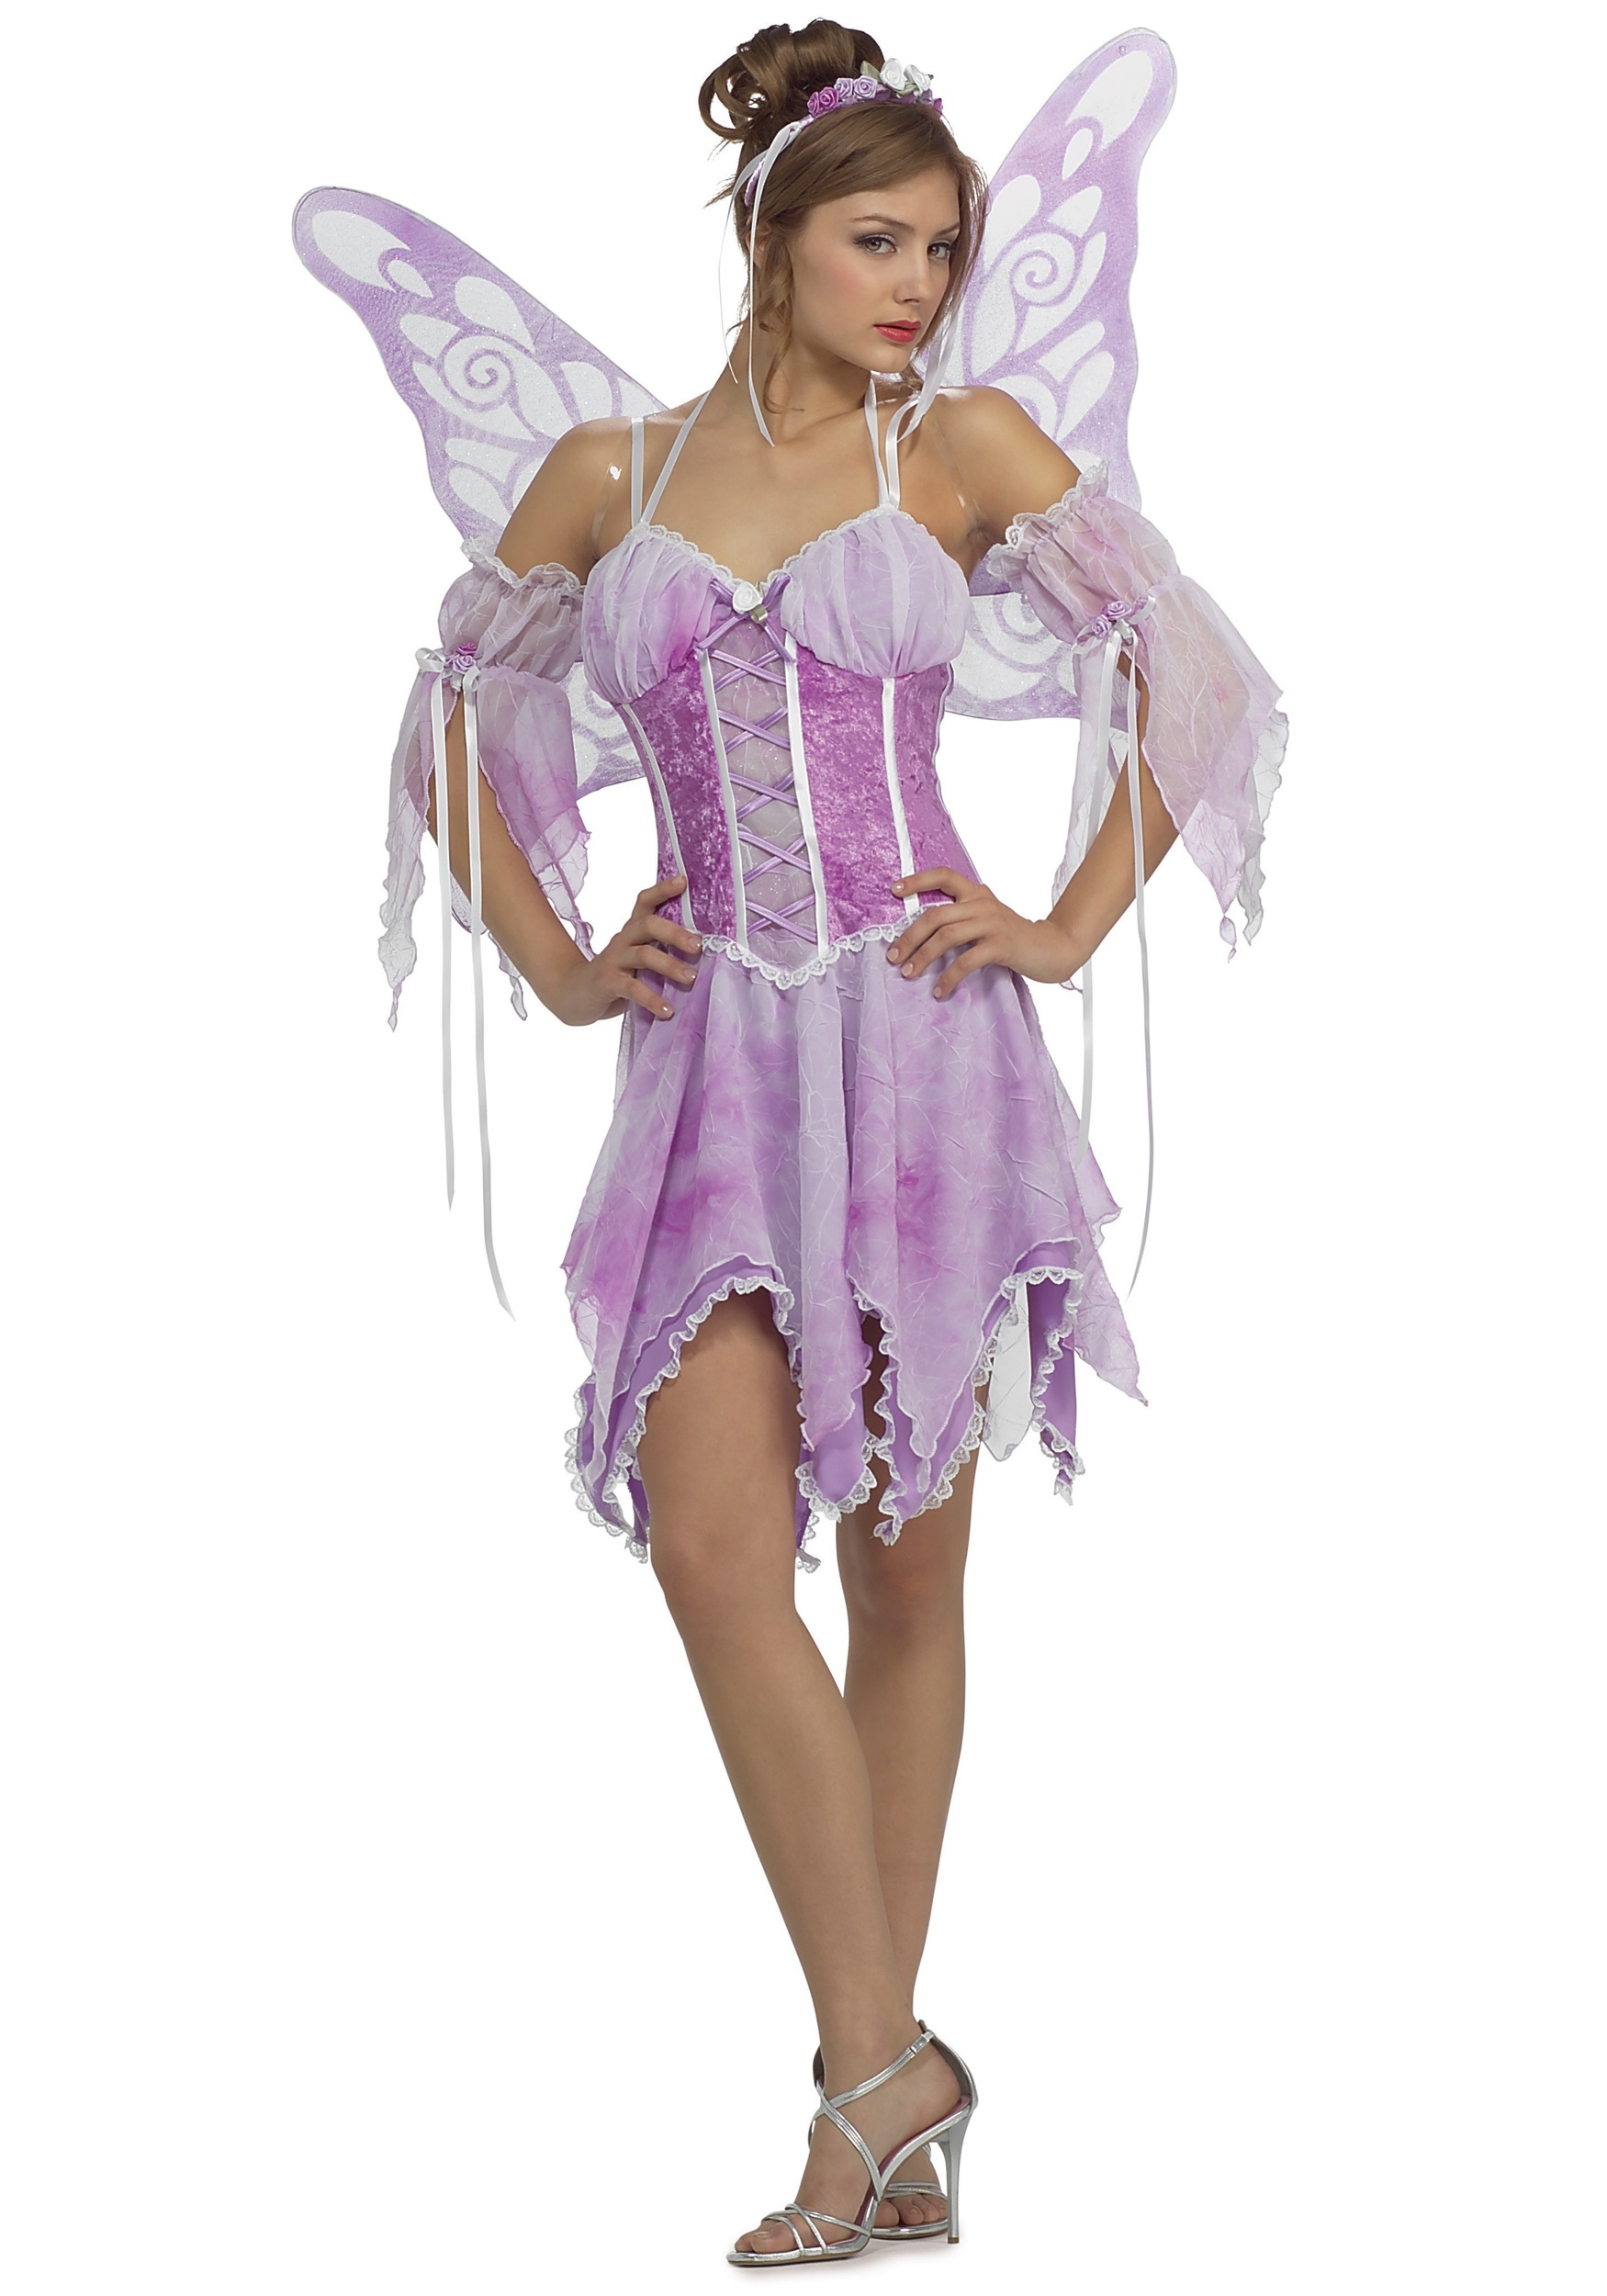 Spending Fantasy sexy costumes porn pictures think